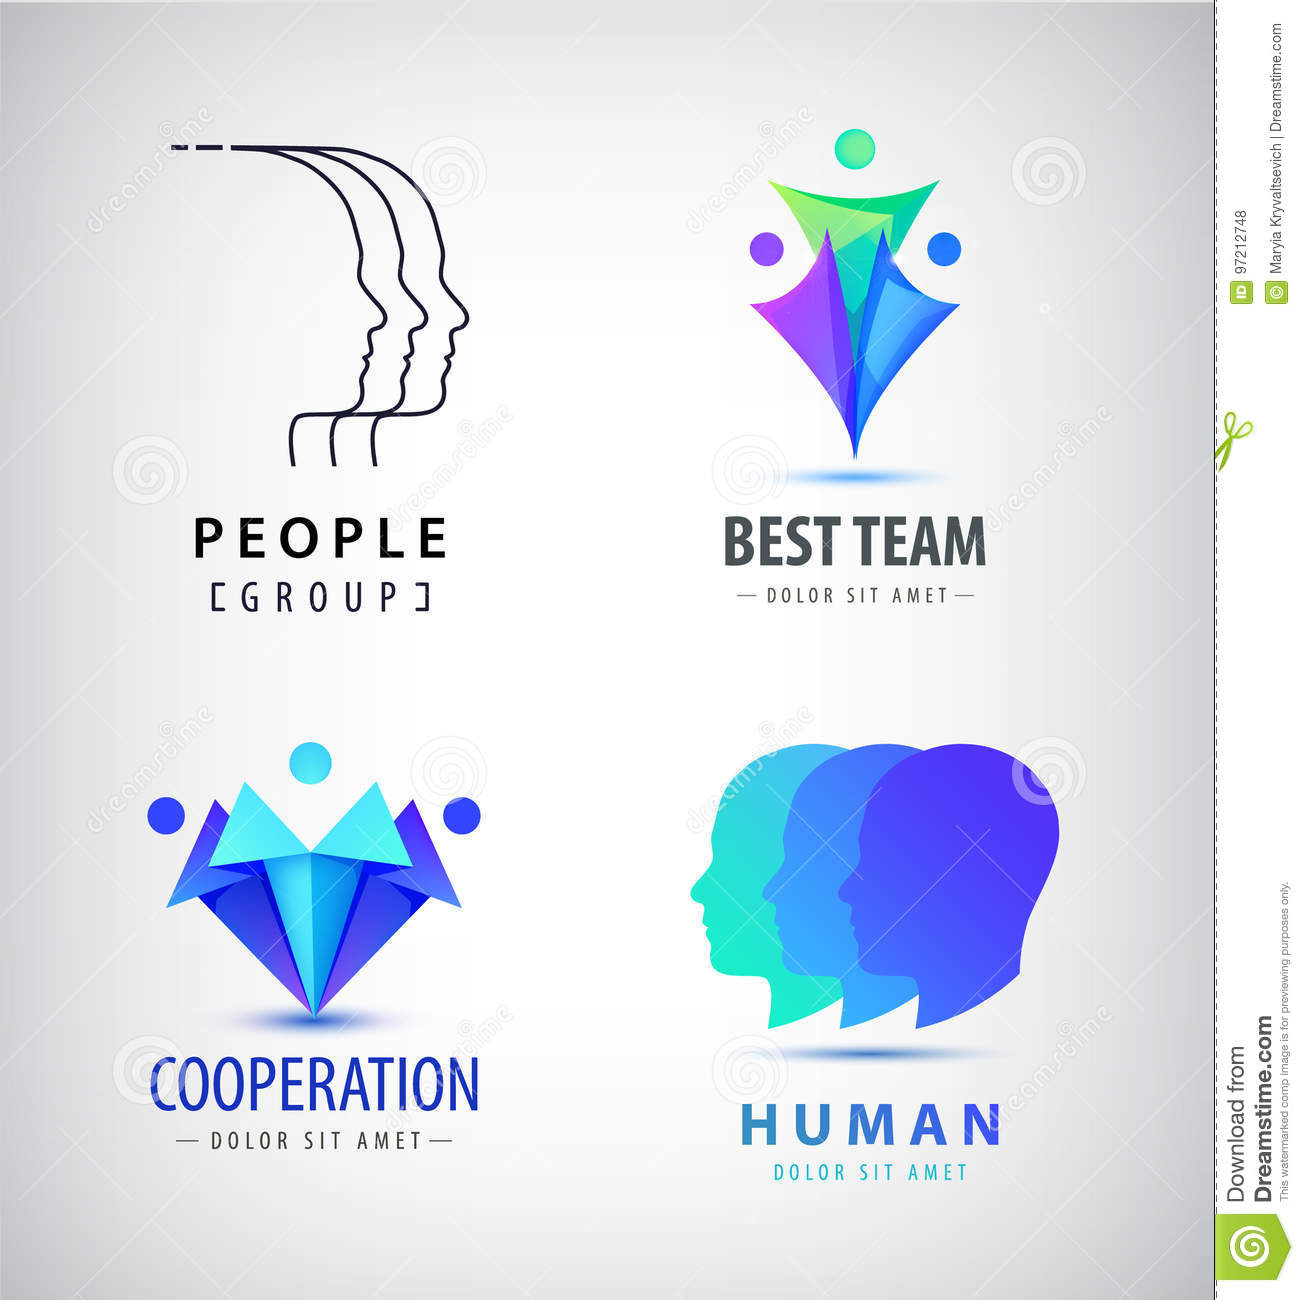 Vector Set Of Human Men Logos Creative Group Teamwork Family Union Signs Origami Linear Styles